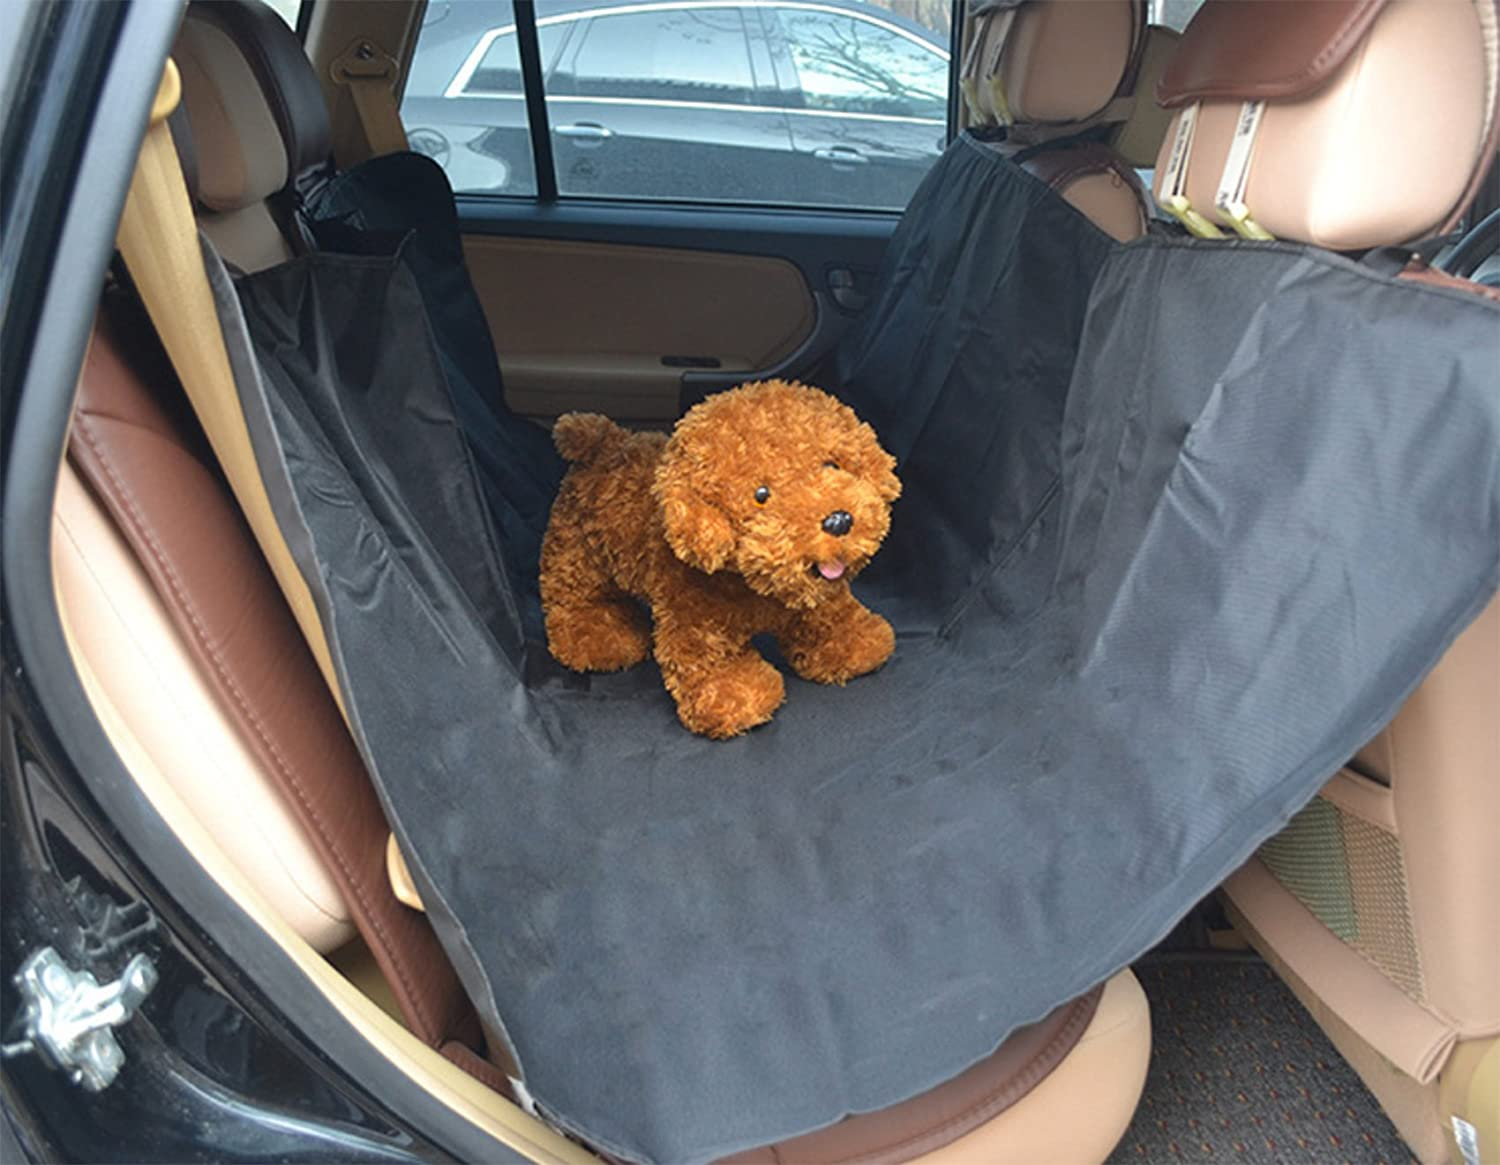 WSLCN Waterproof Dog Seat Covers Washable Travel Car Seat Cover Dog Hammock Car Bench Seat Cover Rear Seat Protector for Pets Size 1.4M*1.3M Black